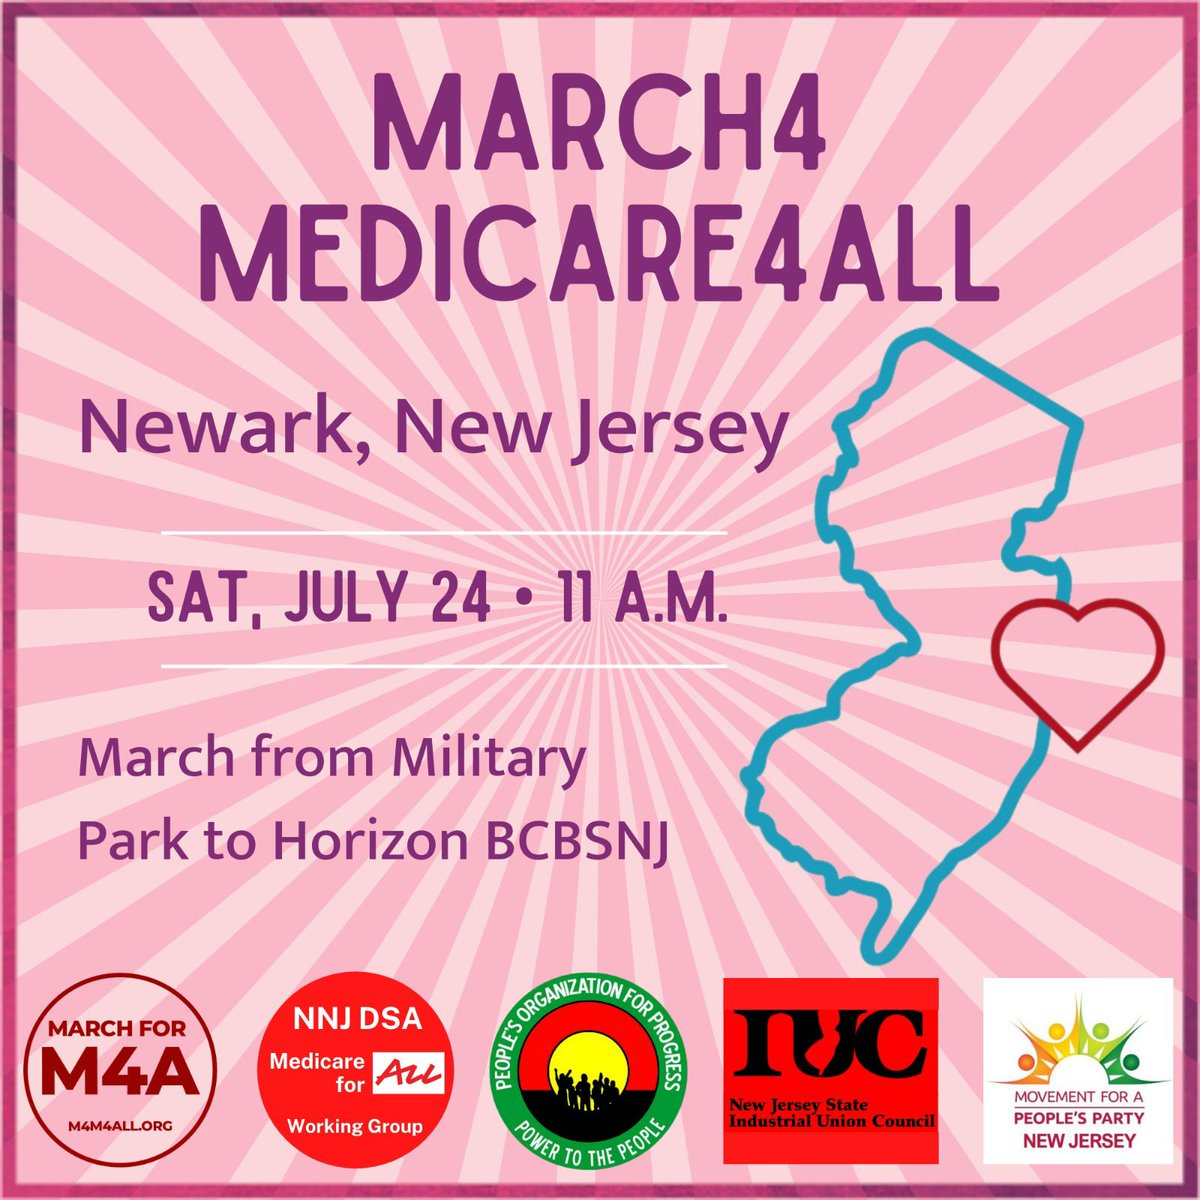 Join our Medicare for All Working Group and community partners People's Organization for Progress, NJ State Industrial Union Council, and more to march for and demand M4A!  Military Park, Newark, 11am, Saturday 7/24 https://t.co/ggG7lpKpvc